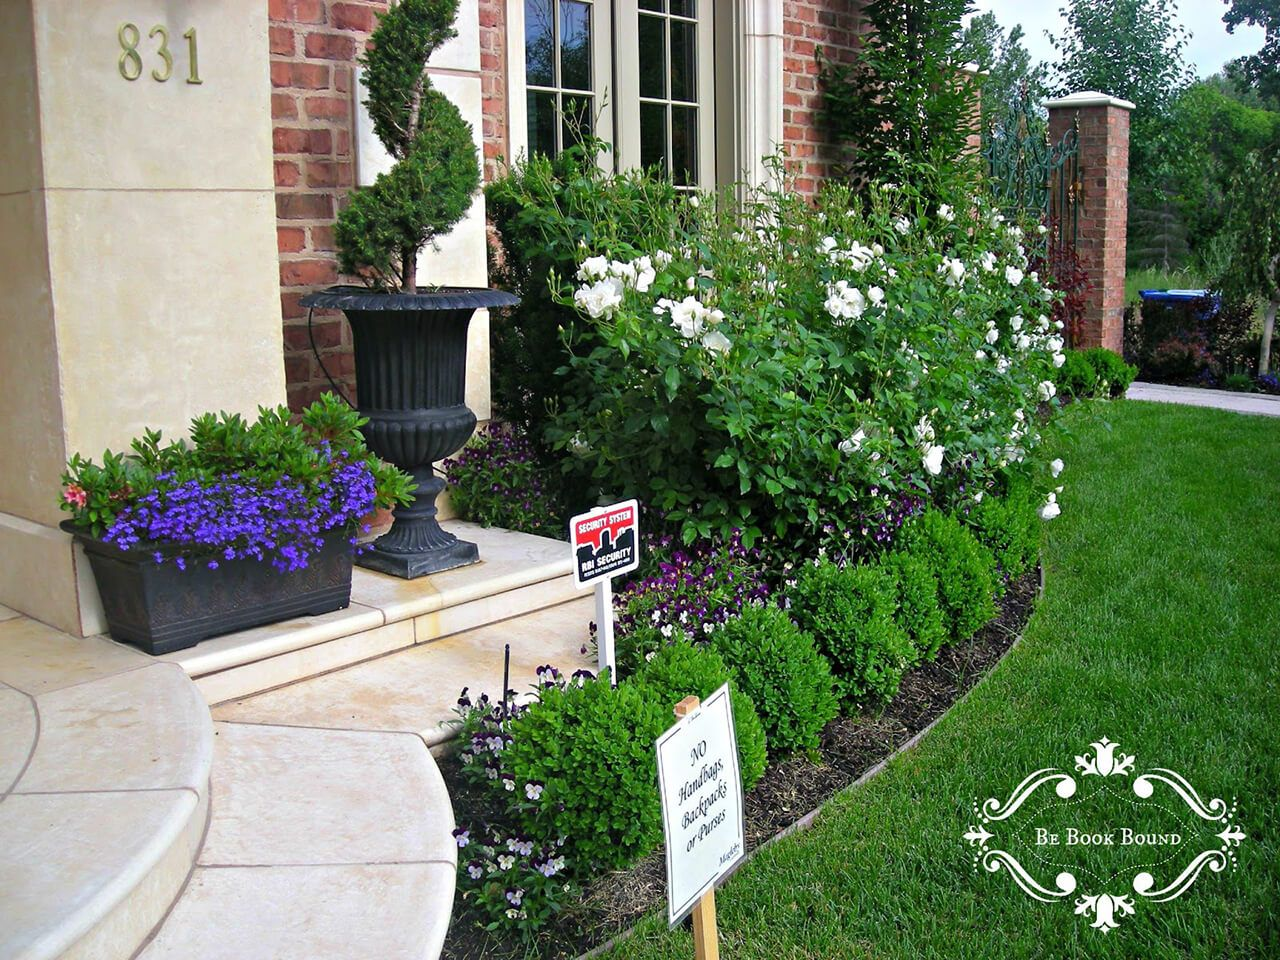 50 Brilliant Front Garden And Landscaping Projects You Ll Love Front Yard Landscaping Design Front Yard Landscaping Pictures Front Yard Landscaping